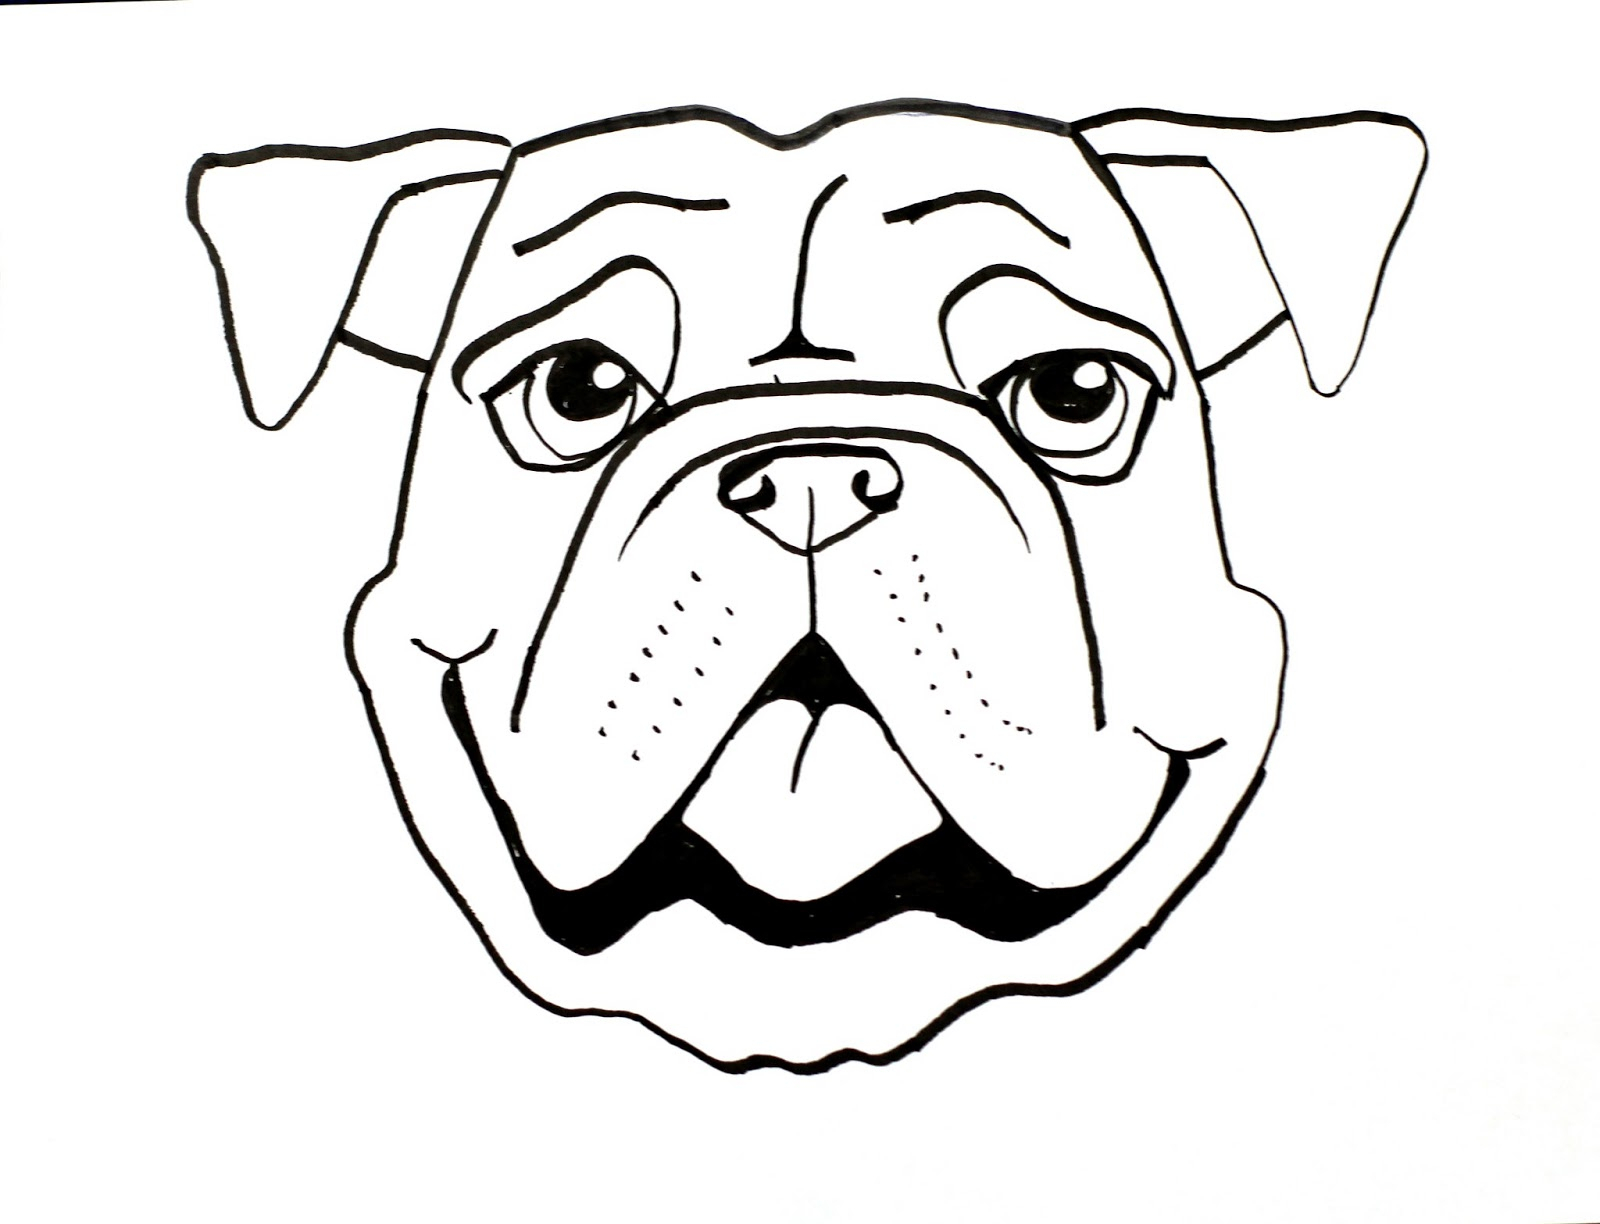 1600x1224 Easy Sketch To Bull Face Drawn Dog Face